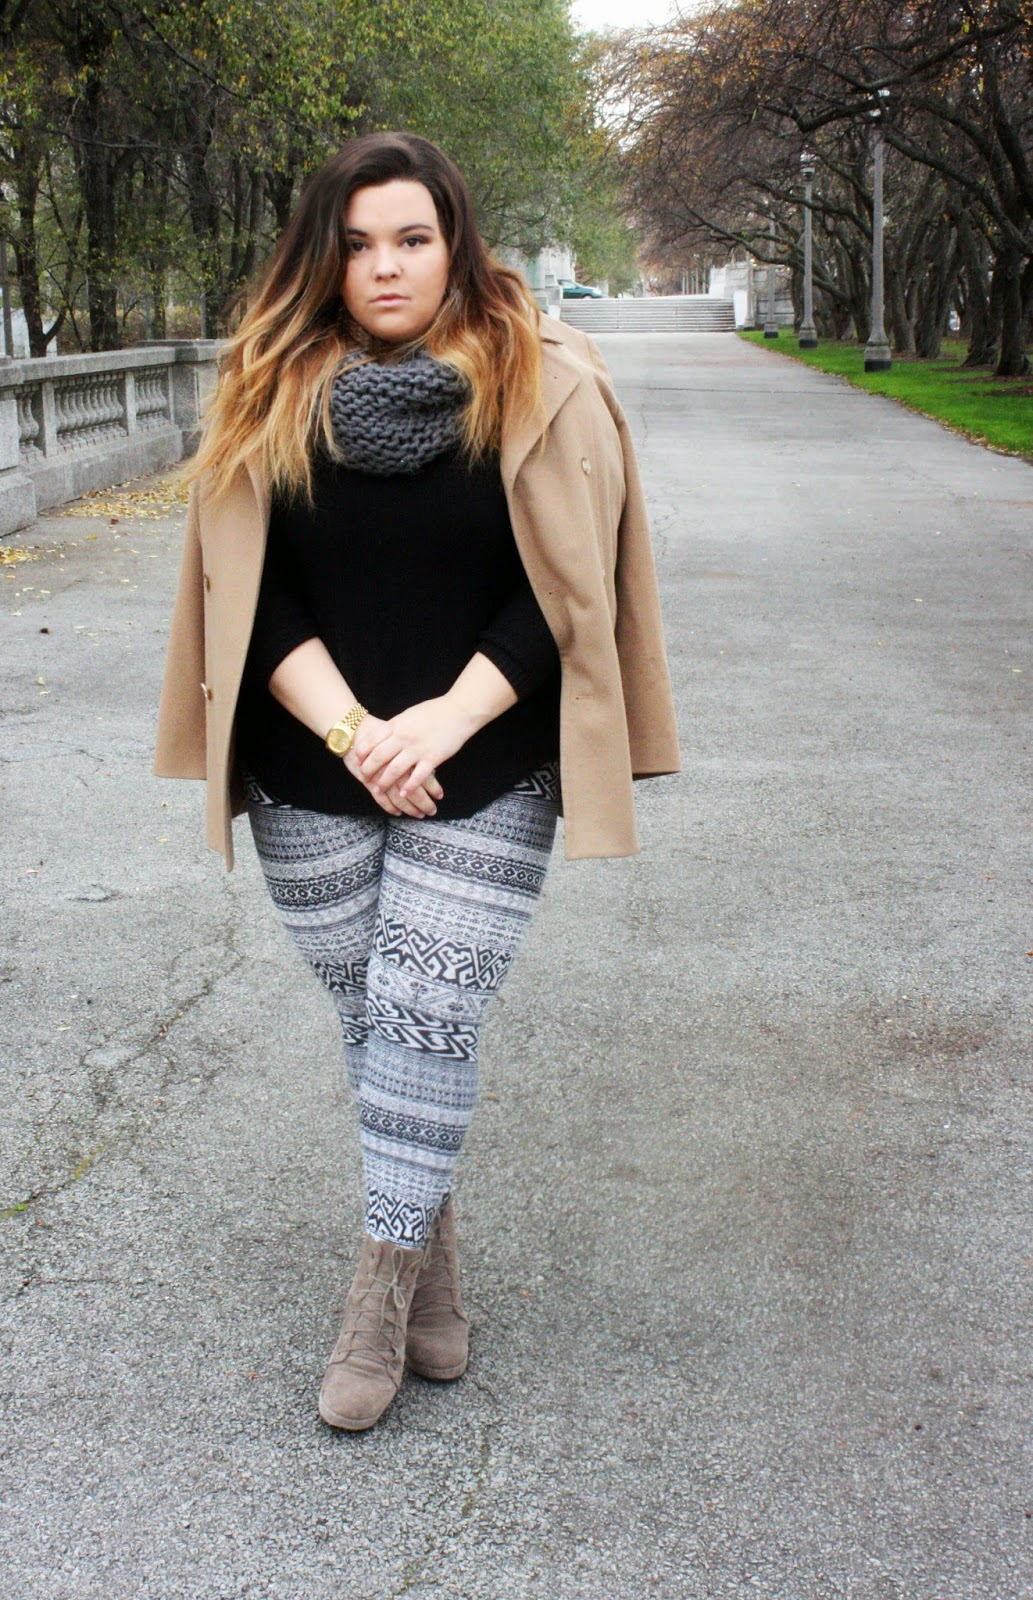 2014 winter trends, ankle boots, Chicago, gold watch, infinity scarf, kim kardashian tan coat, Natalie Craig, natalie in the city, pattern leggings, plus size fashion blogger, sweater cut-outs, tan coat,